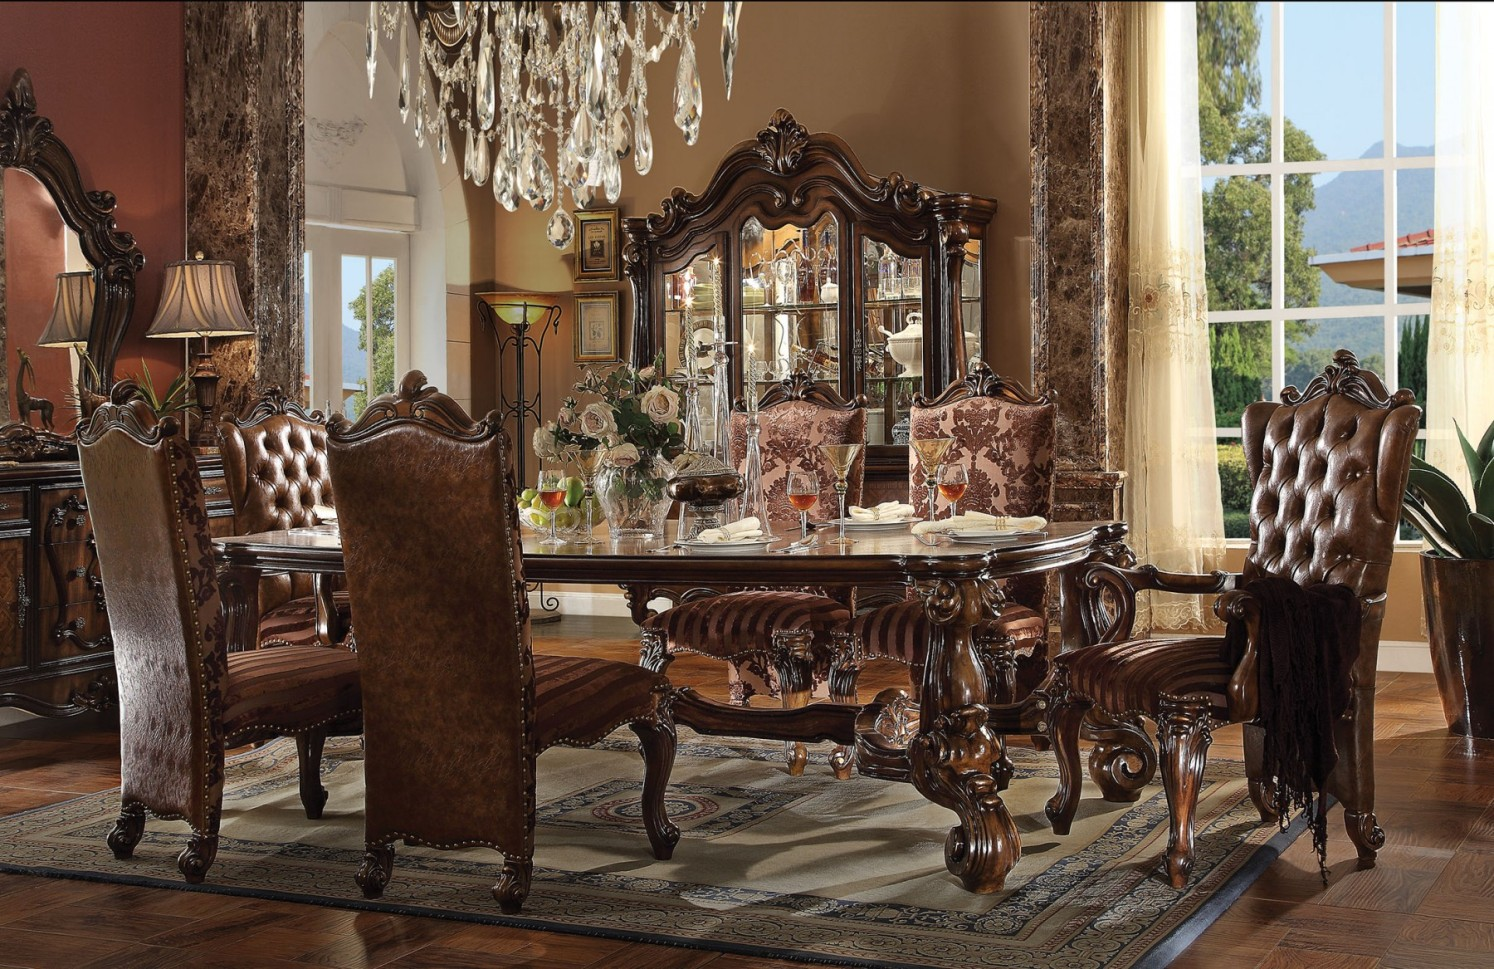 Formal dining room sets how elegance is made possible for Fancy dining room sets